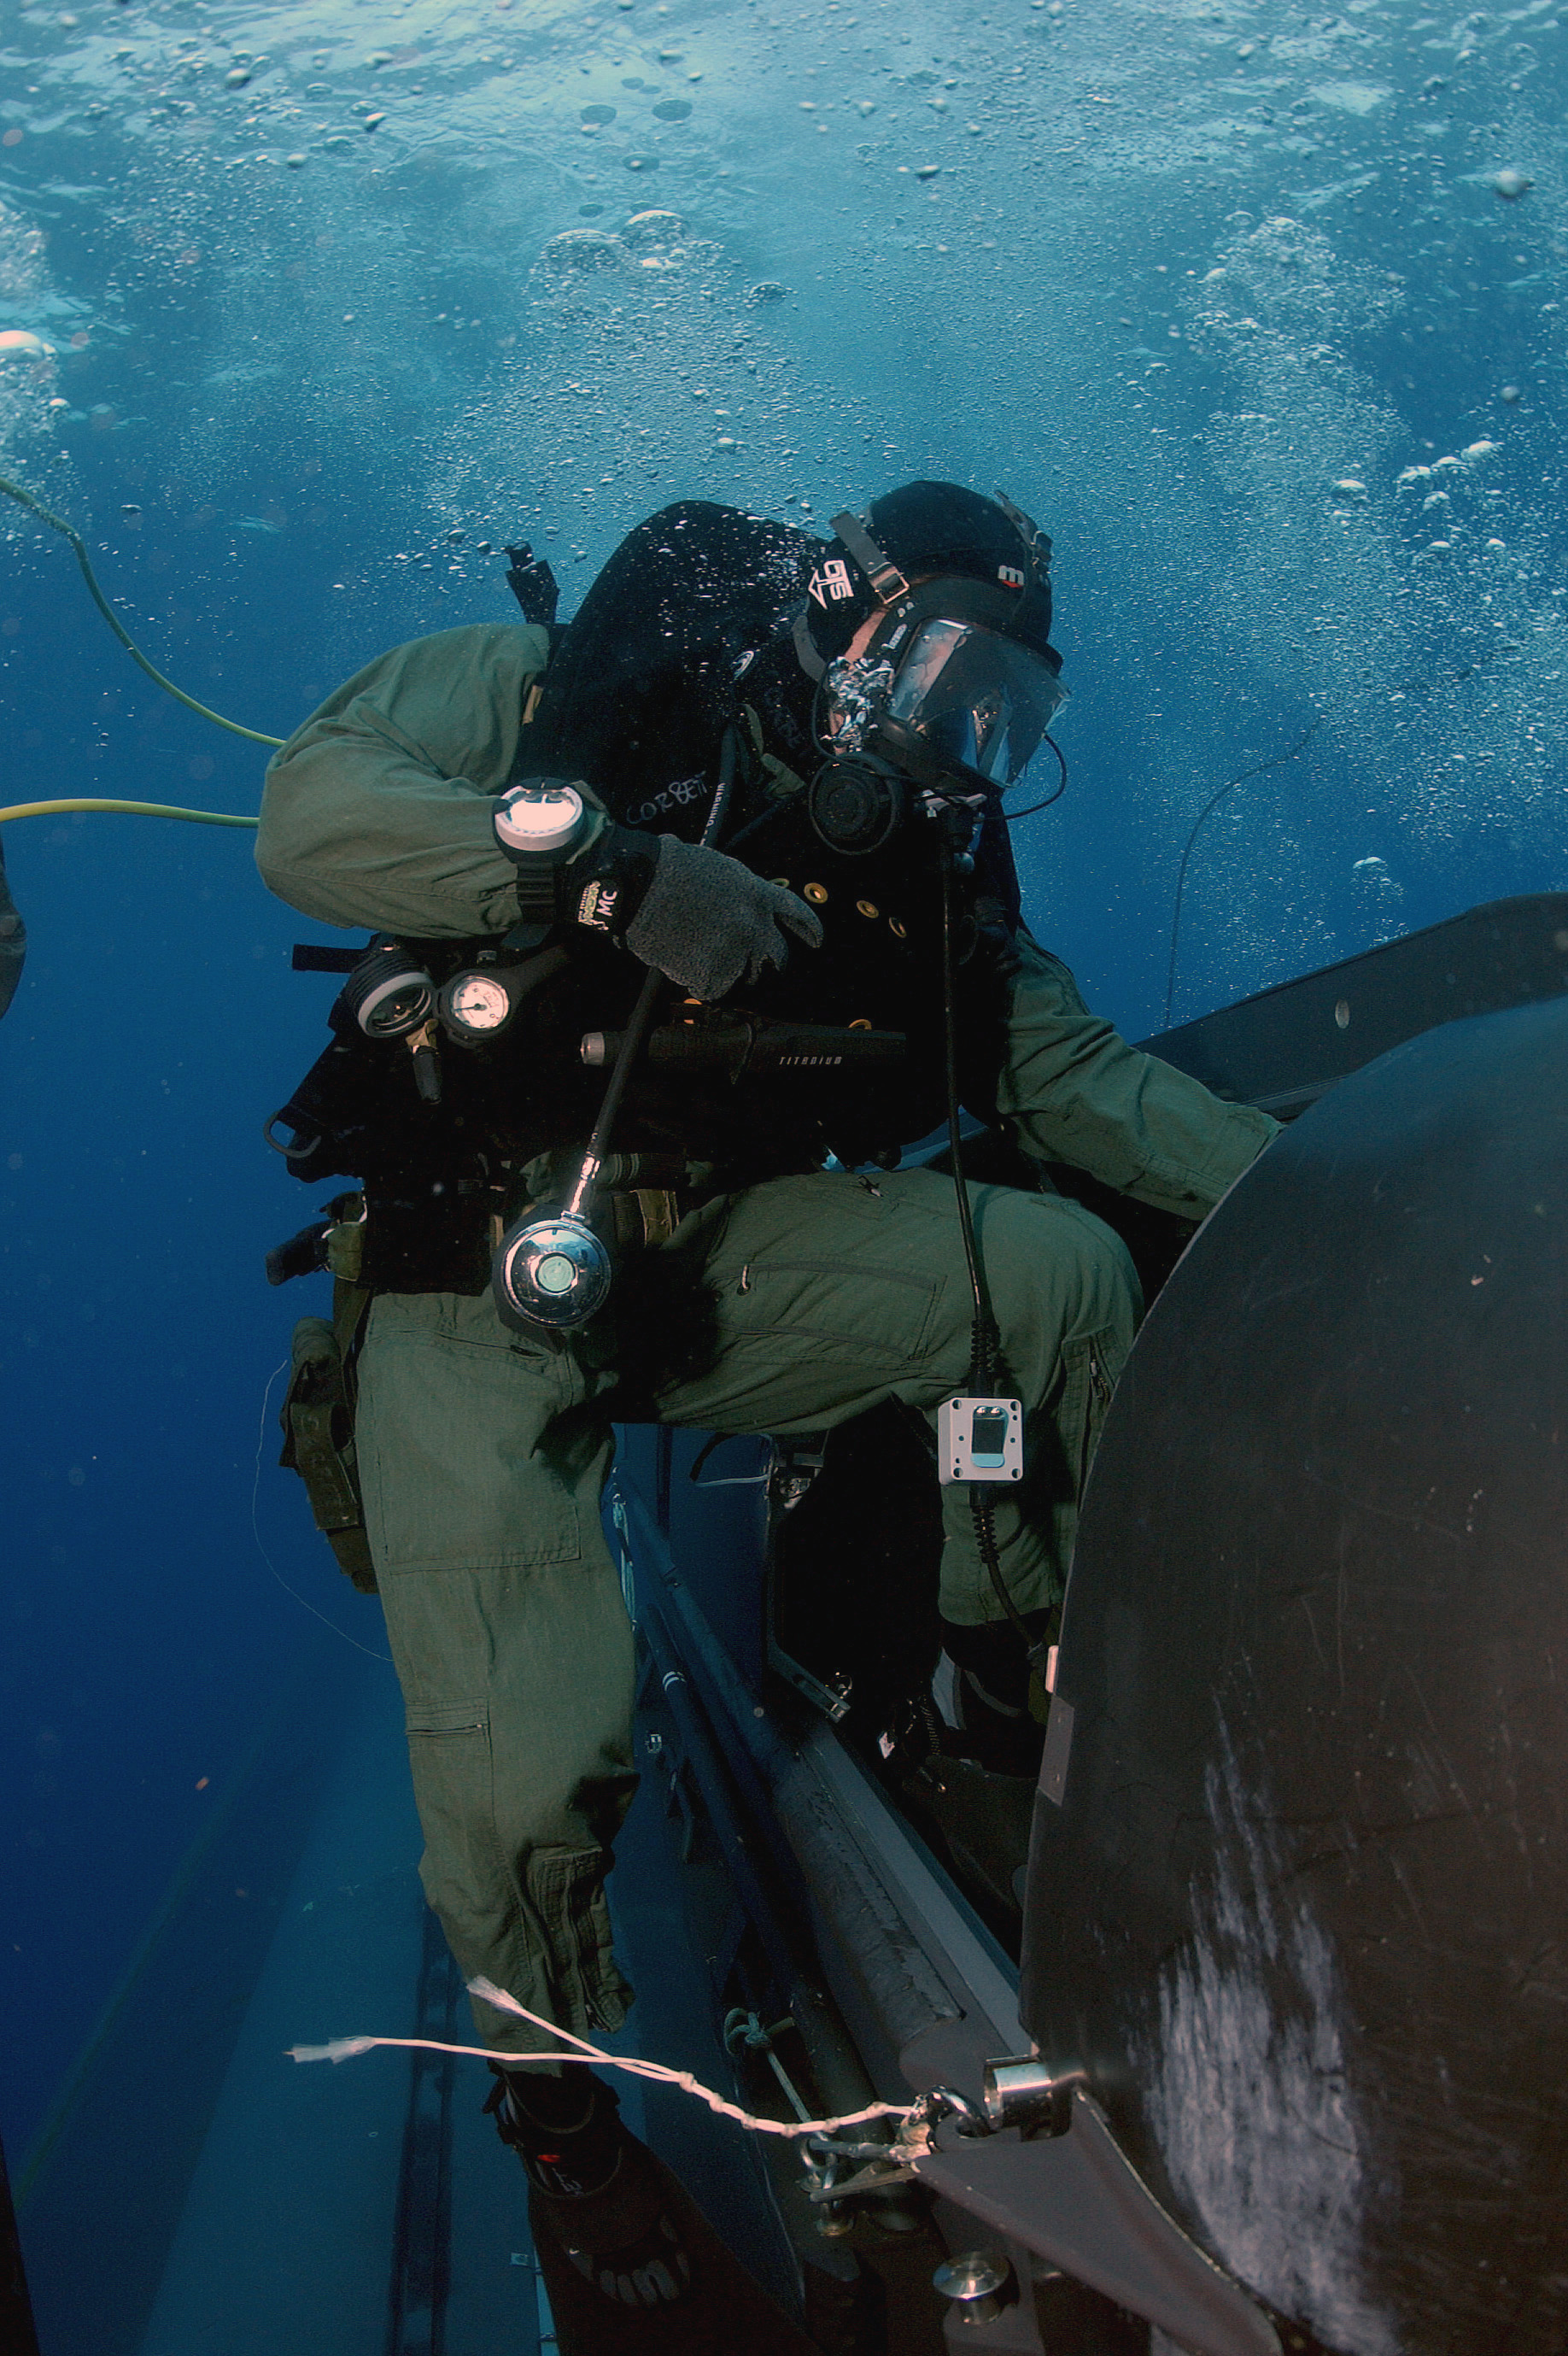 tactical scuba diving wallpaper - photo #27